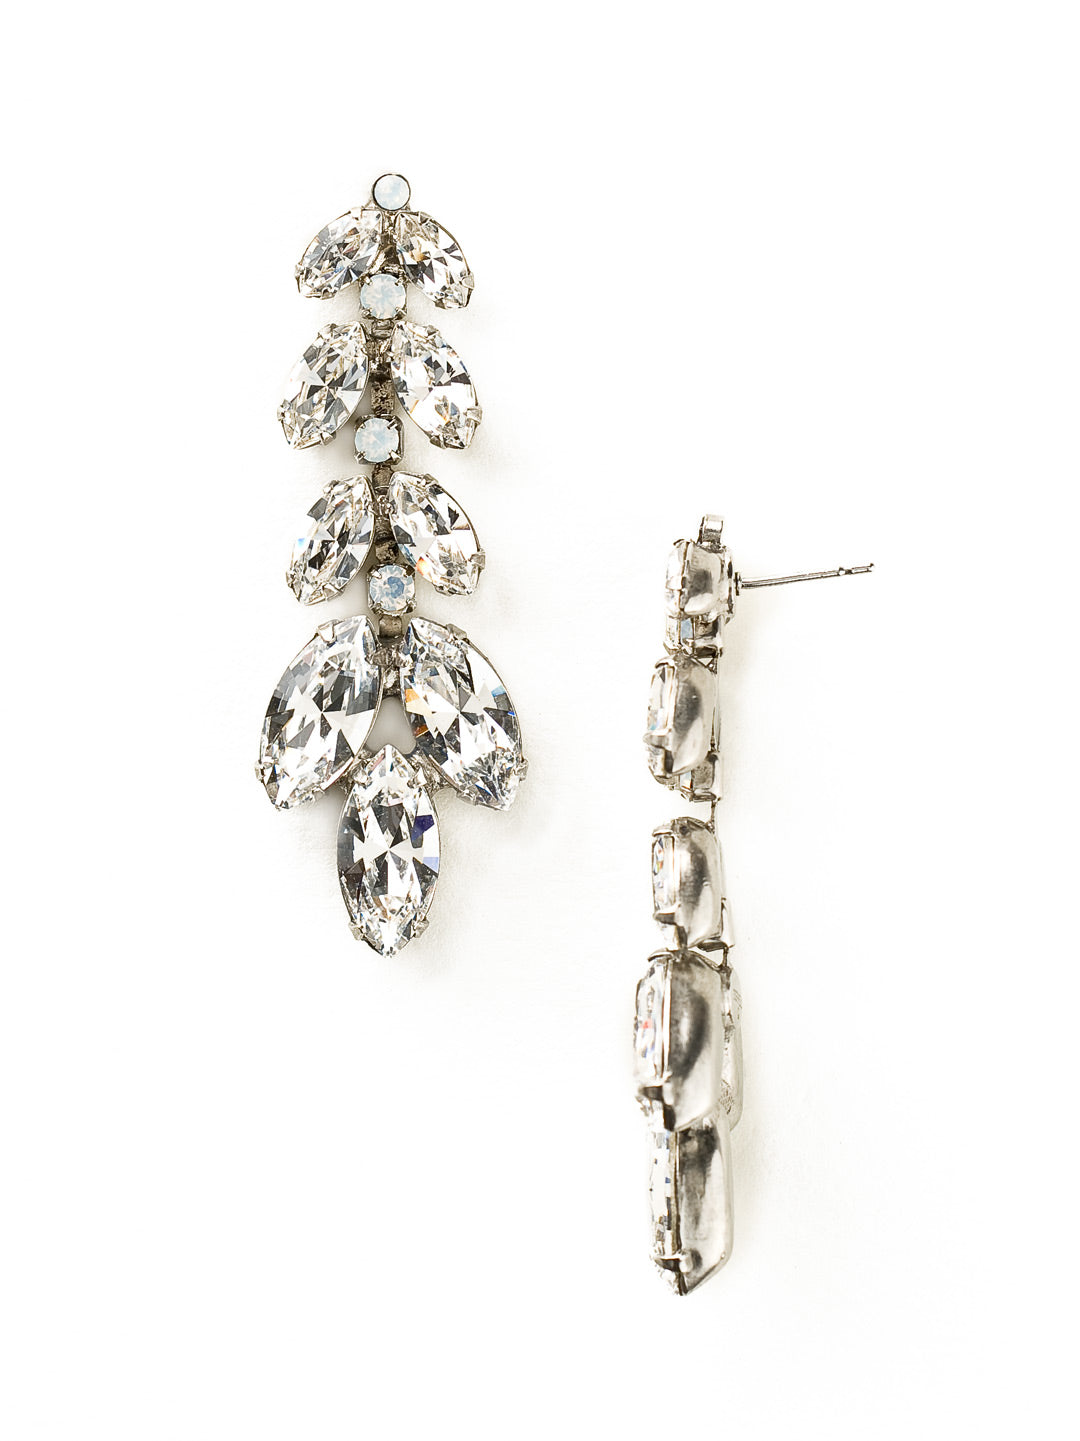 Repeating Navette Crystal Drop Earring - ECZ2ASWBR